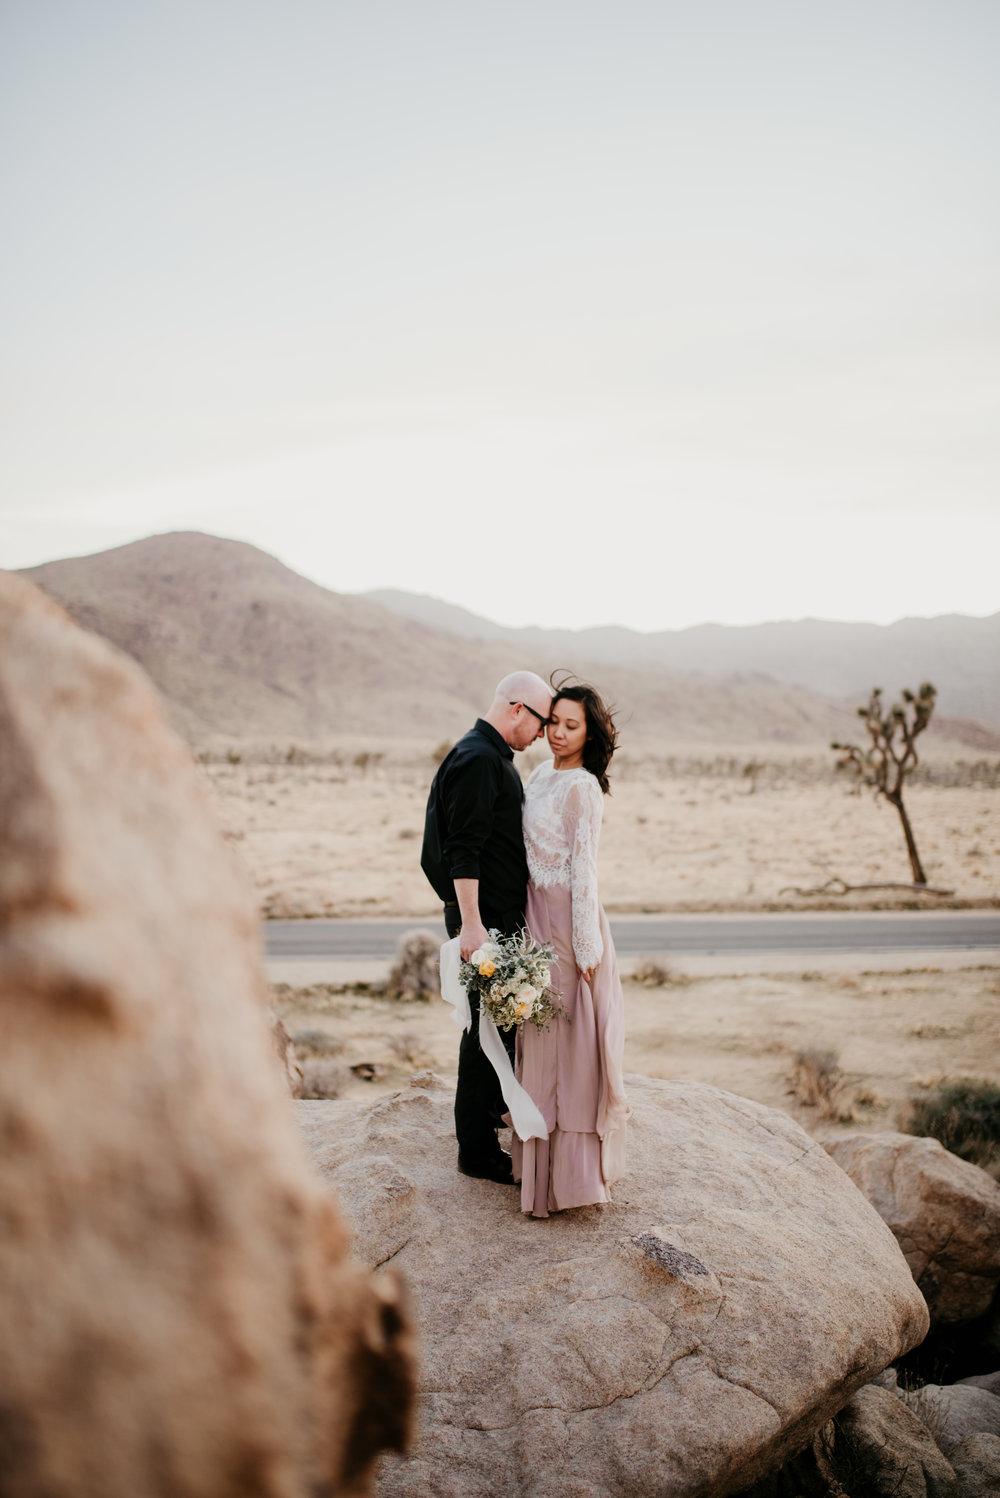 Joshua Tree, Joshua Tree wedding, Joshua tree elopement, desert elopement, airplant bouquet, 10 year anniversary, anniversary photo shoot